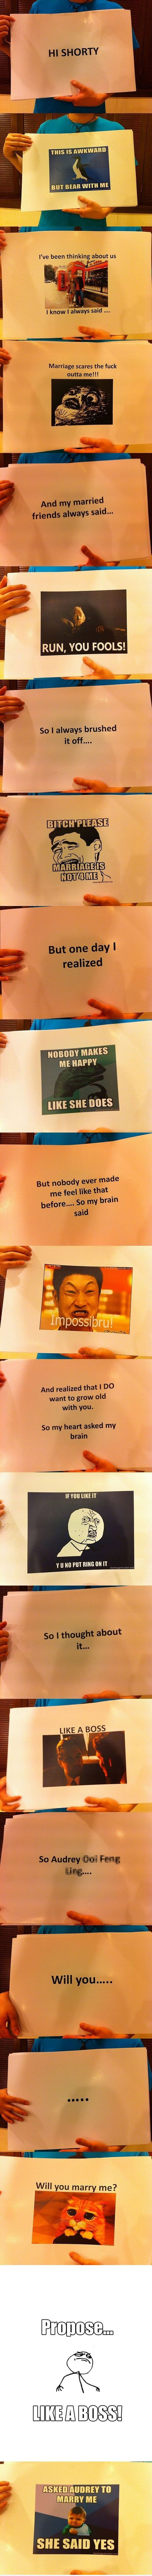 adorable! meme proposal!: Like A Boss, Meme Proposal, Stuff, Awesome, Proposals, Funnies, So Funny